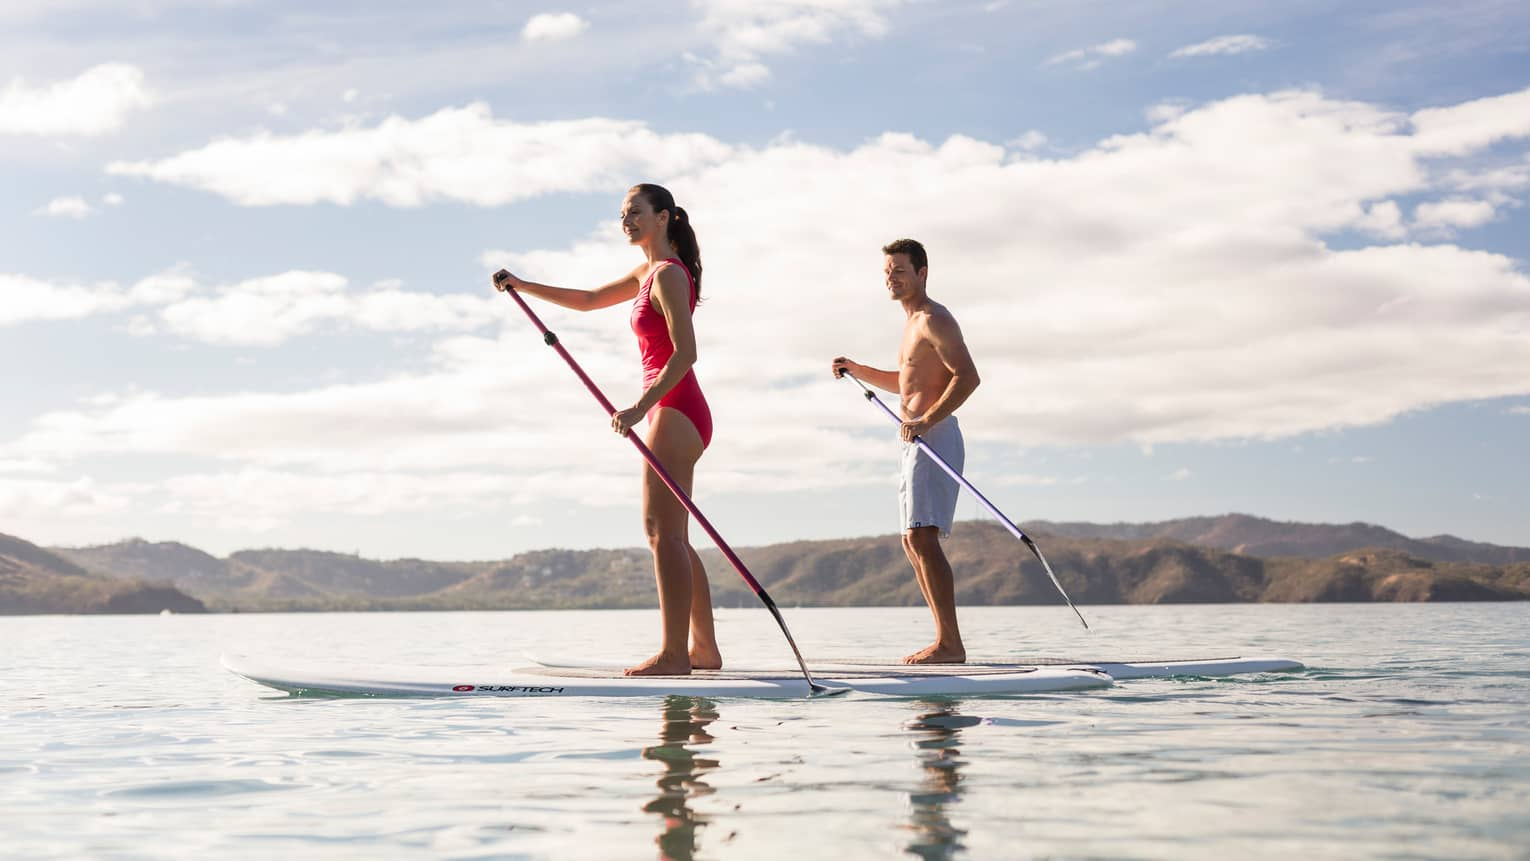 Man and woman wearing swimsuits hold paddles, balance on stand-up paddleboards on ocean